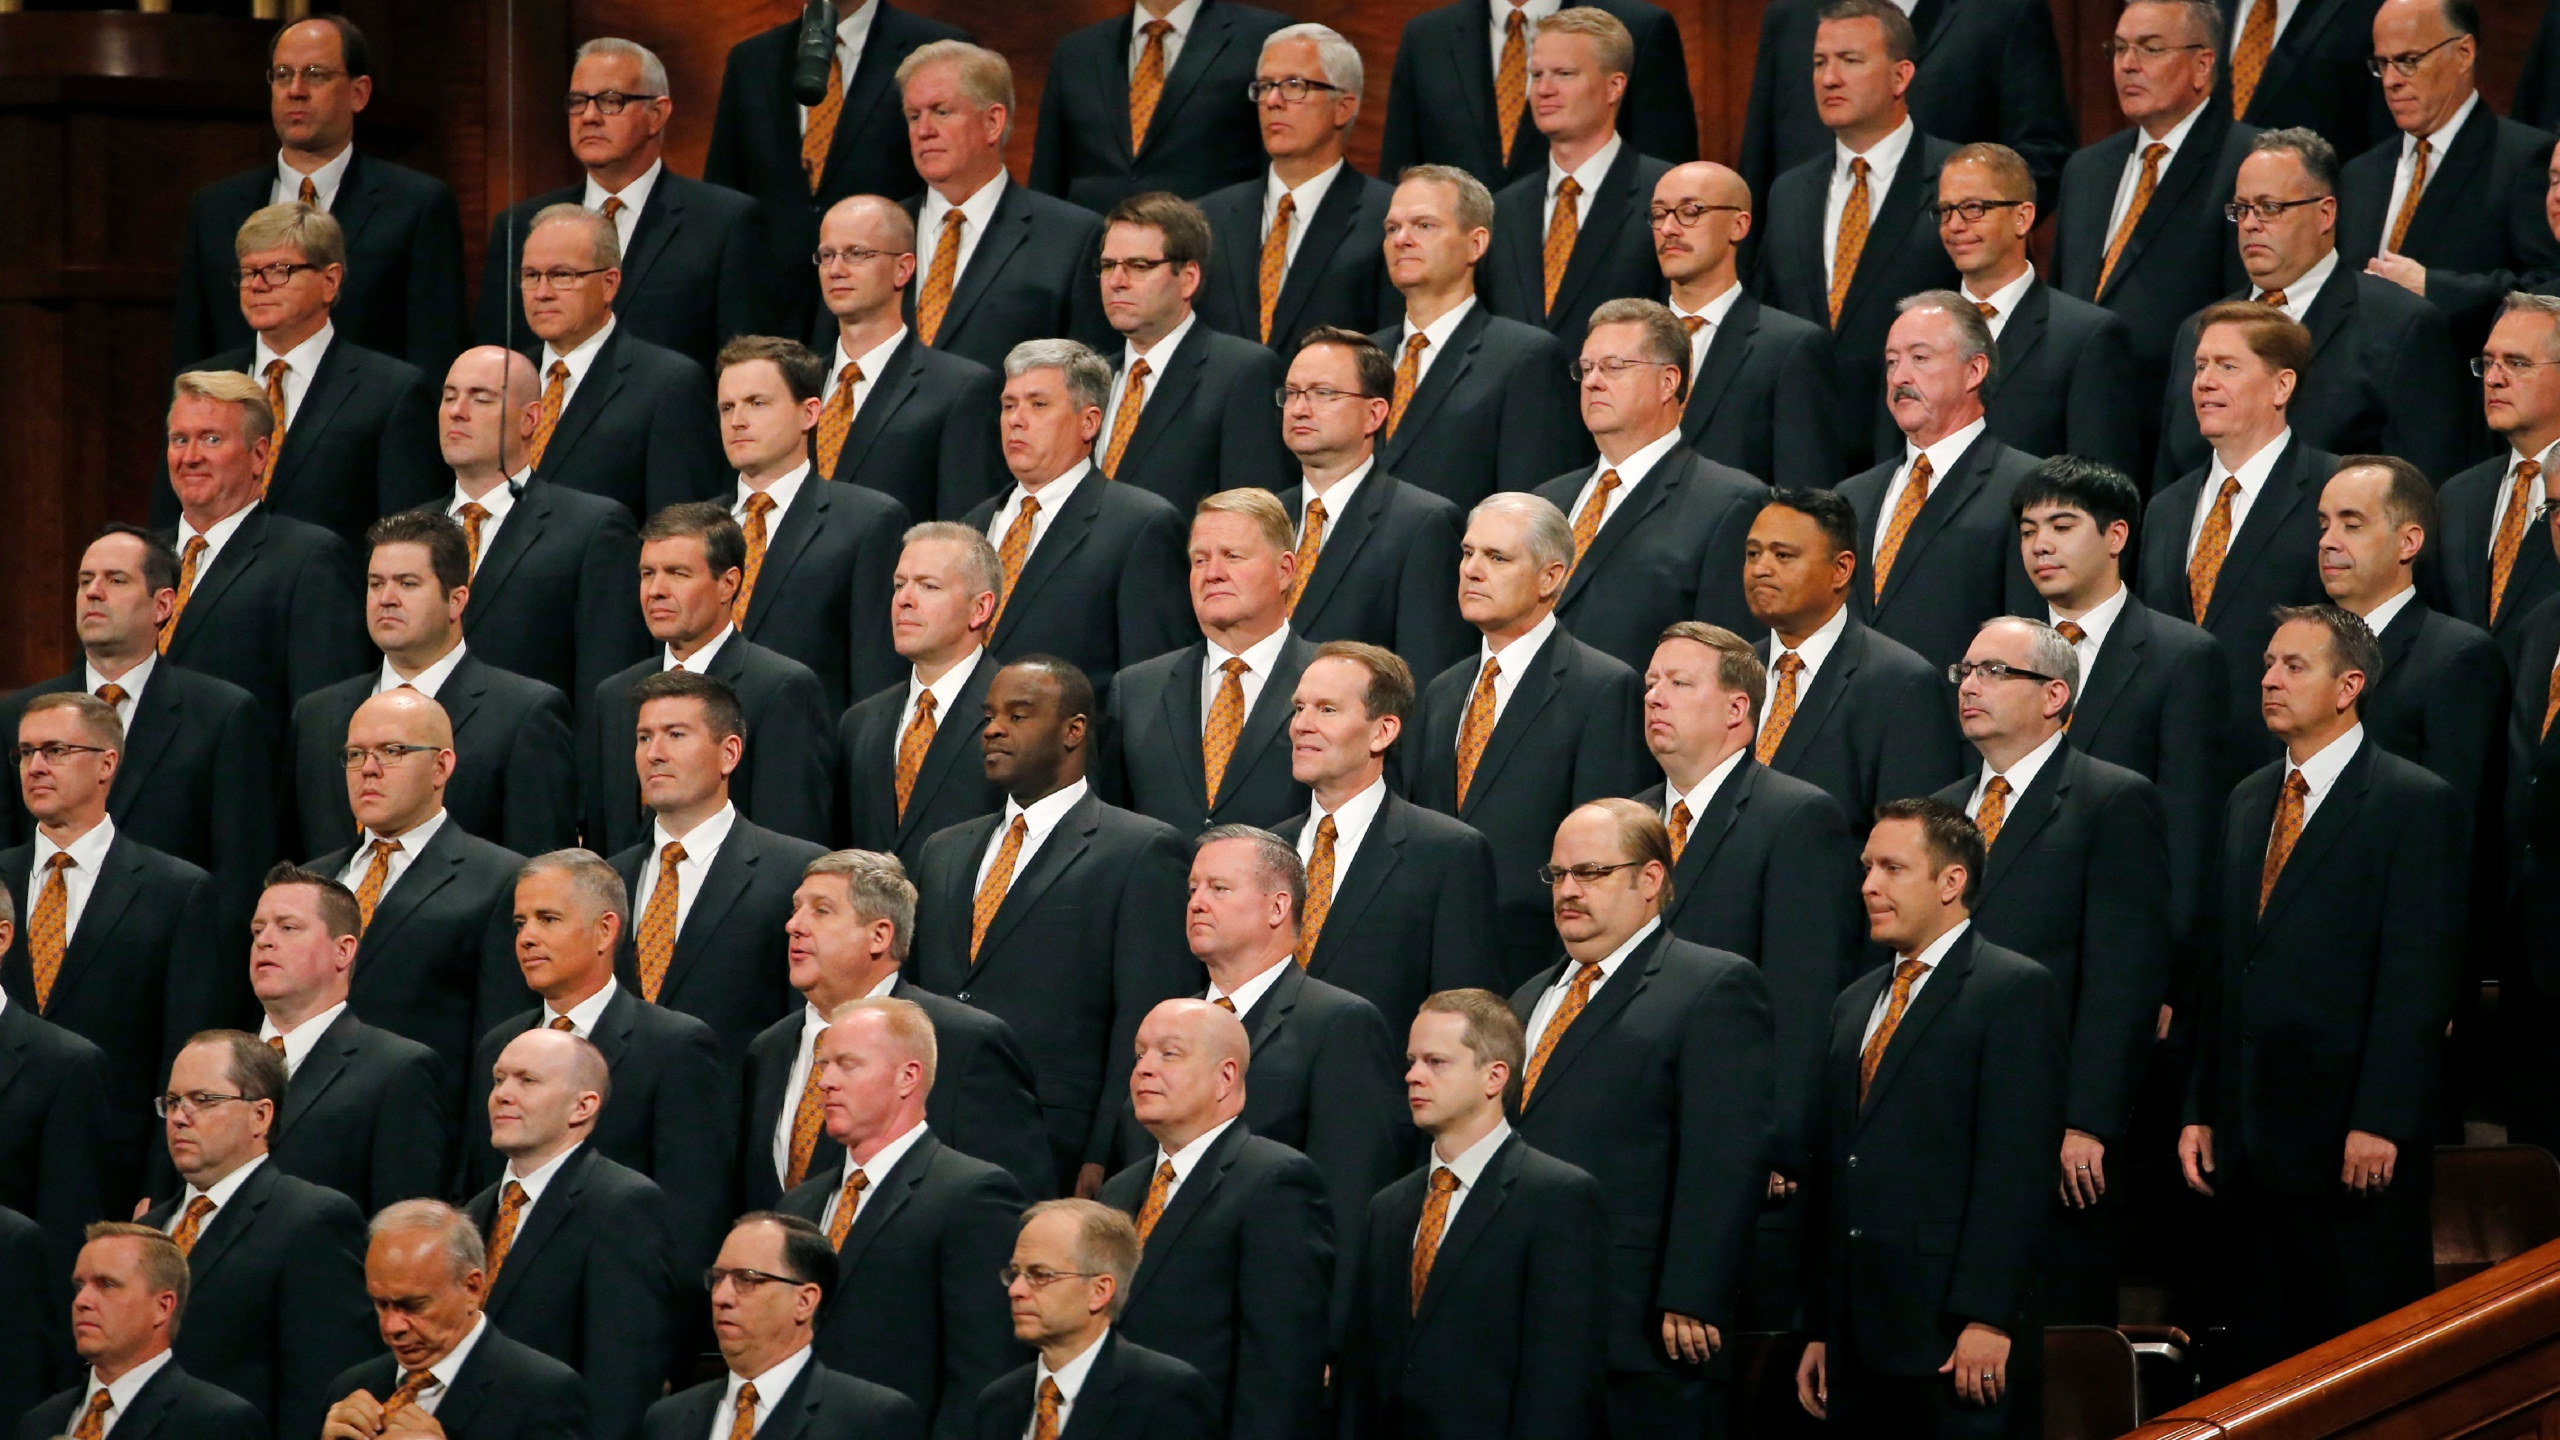 When Did The Mormons Have Their 2020 Concert Christmas Mormon choir Christmas concert cancelled due to pandemic | ABC27